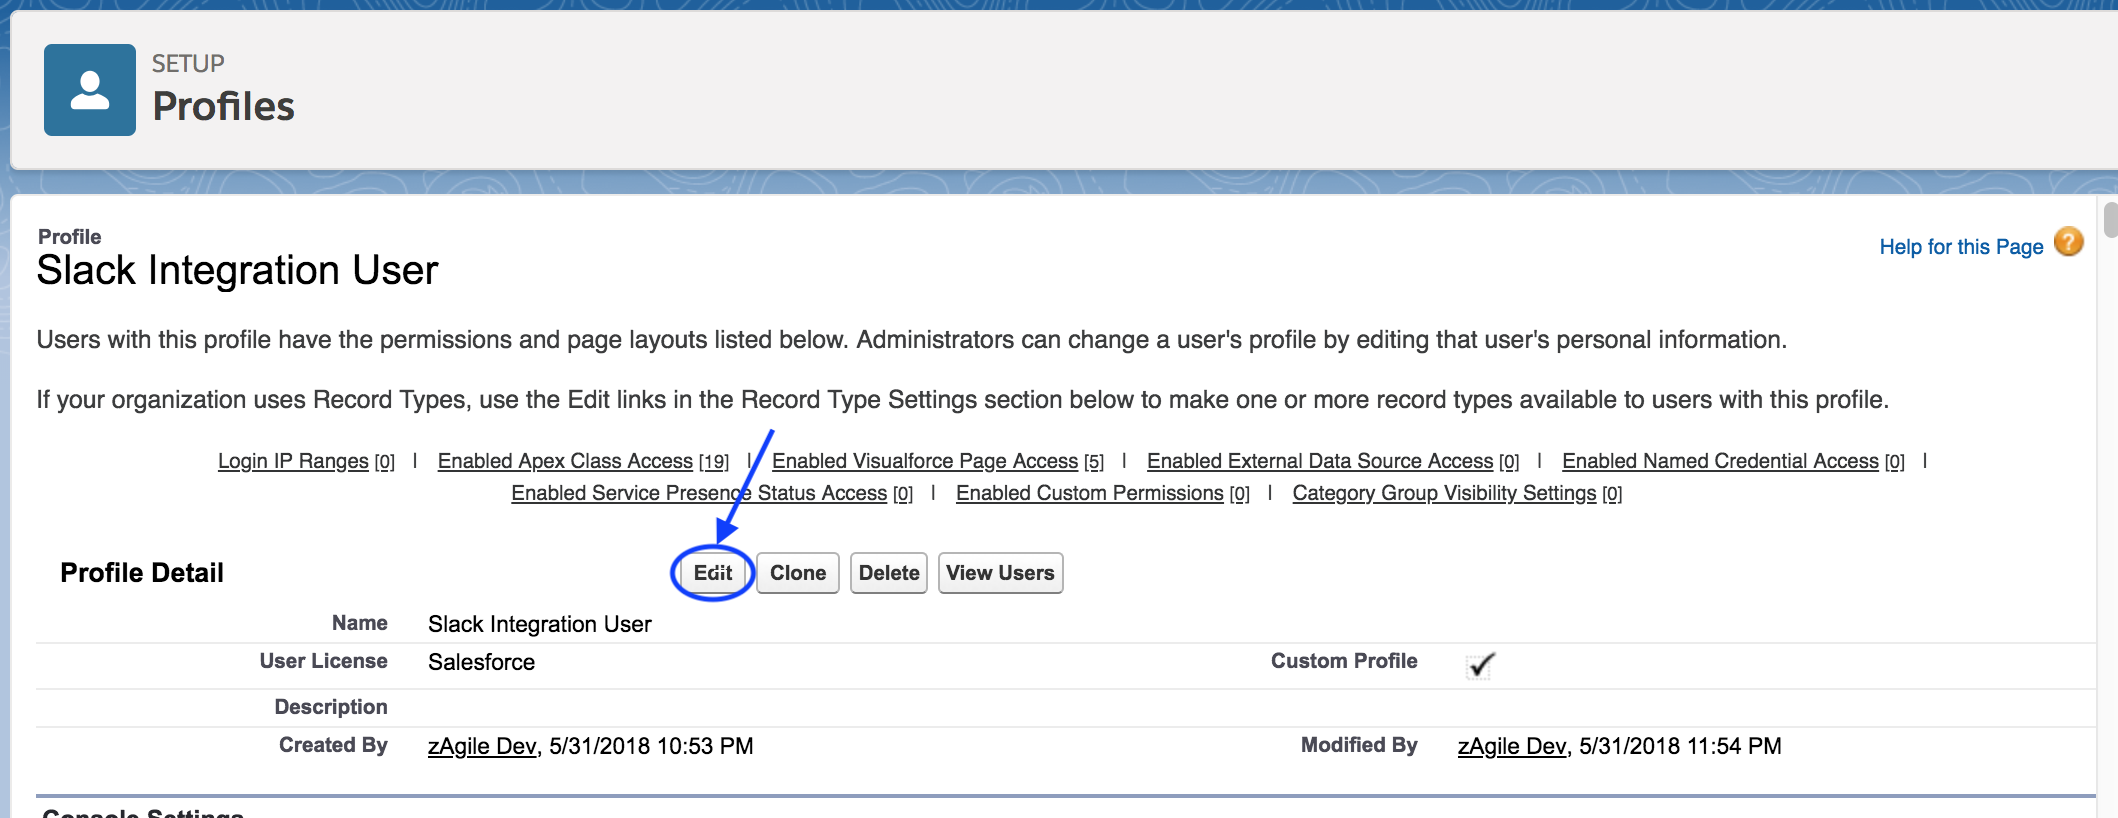 Chat:Bridge - Permissions required for Salesforce